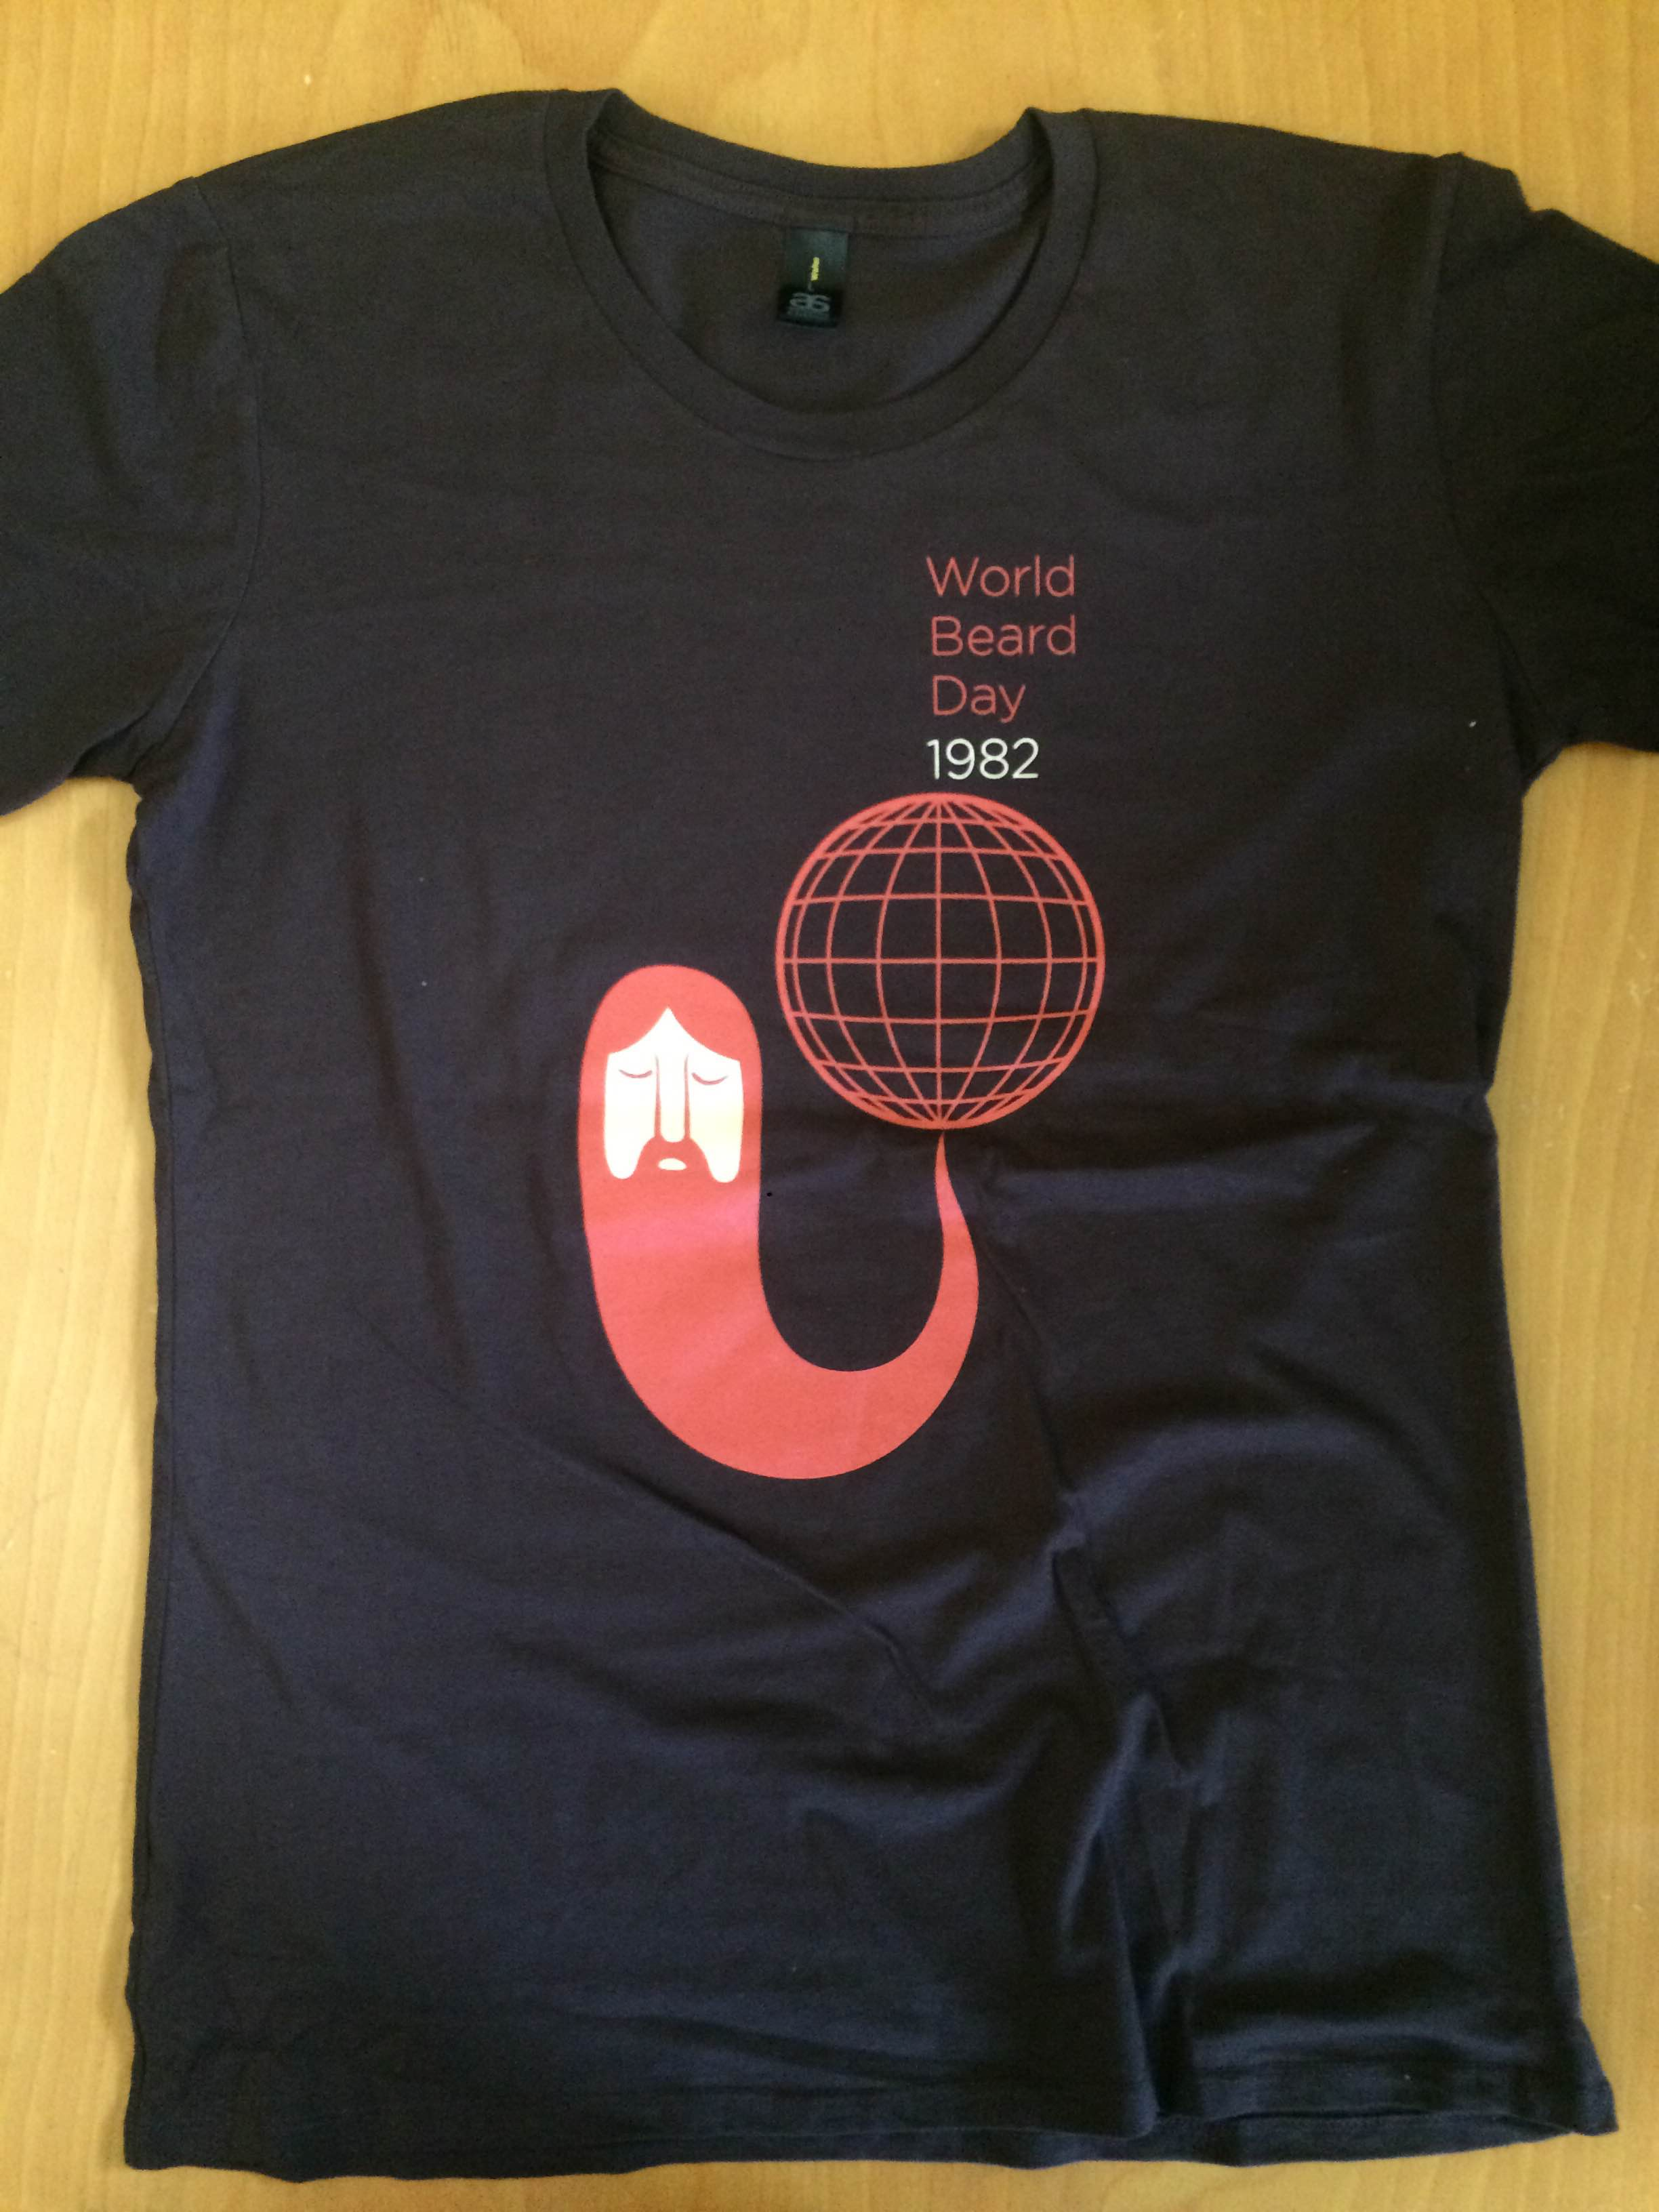 World Beard Day - Tee